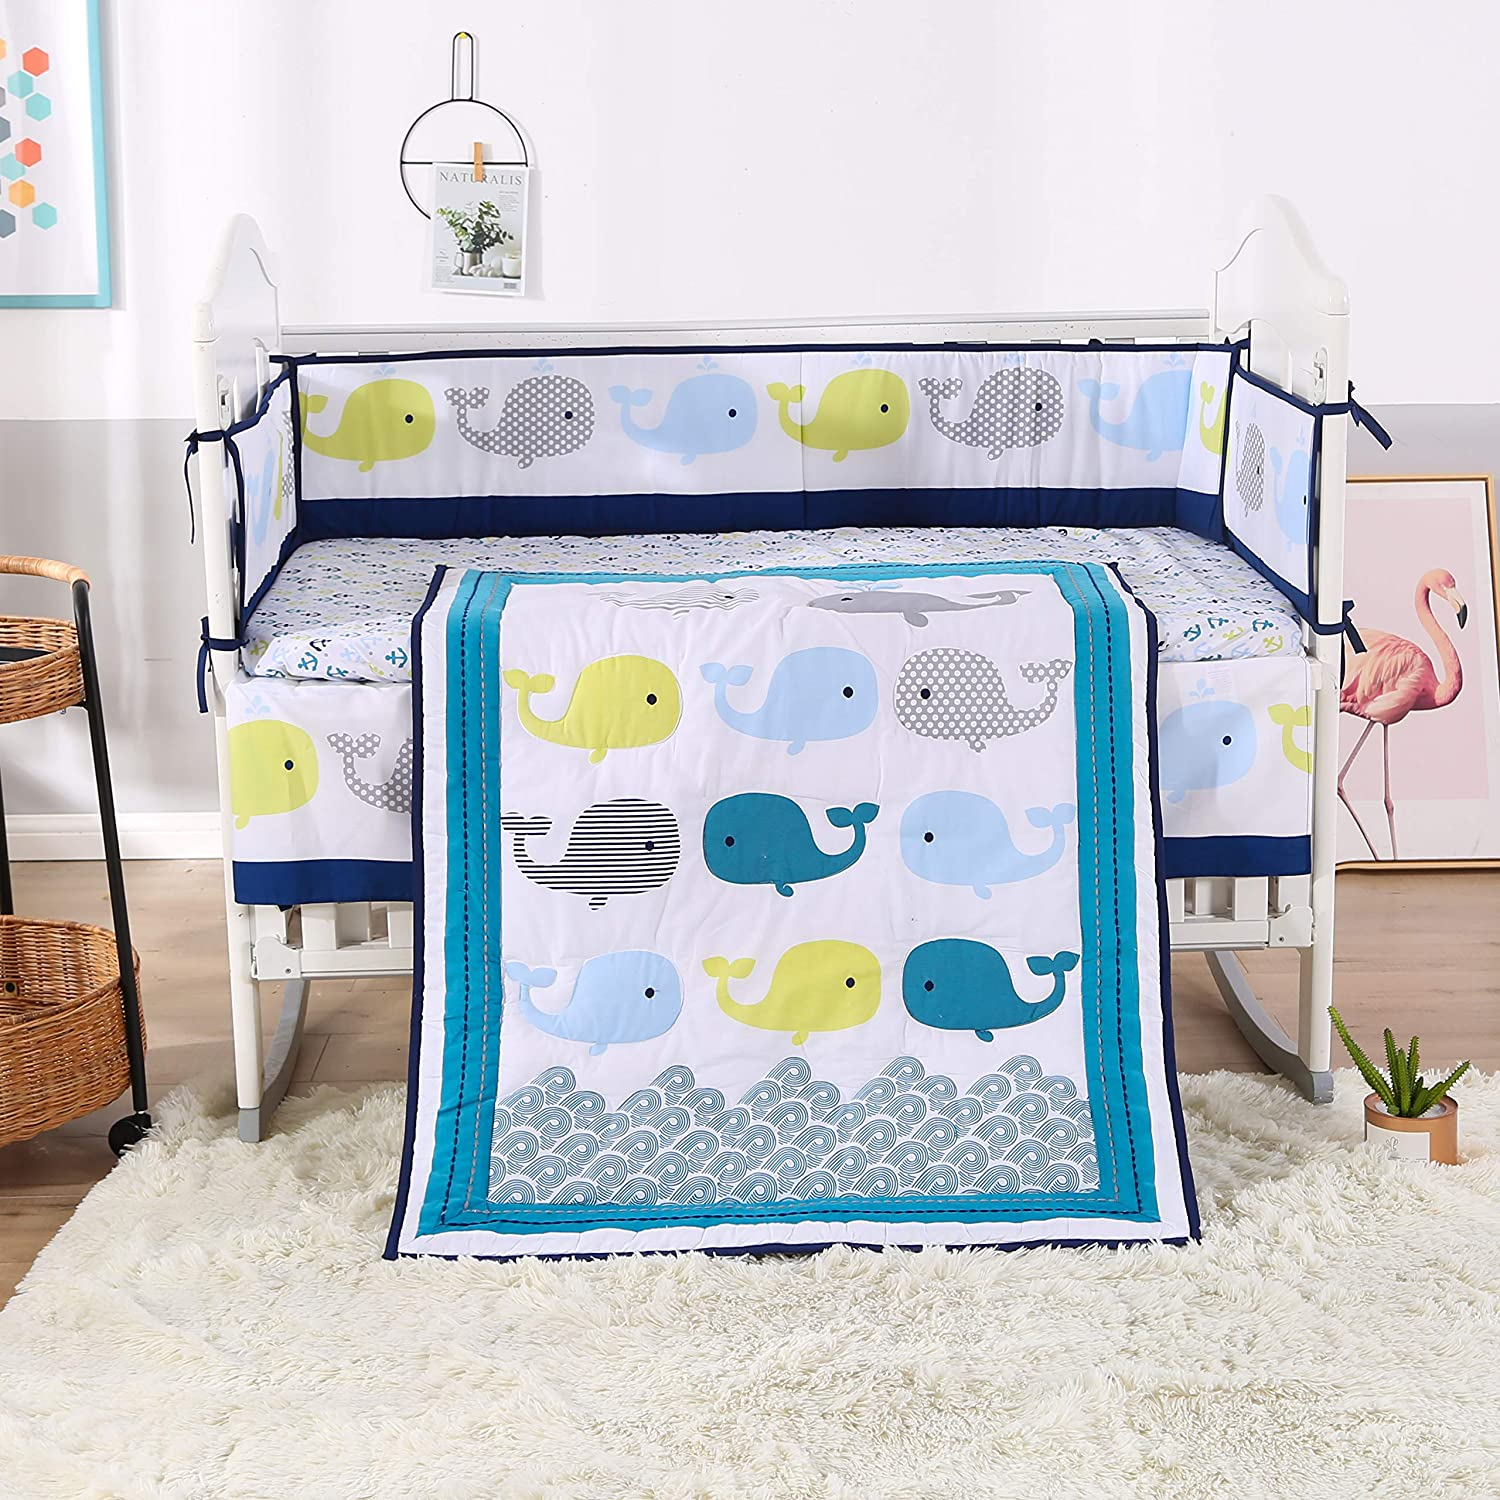 Wowelife Whale Baby Crib Bedding Set 7 Piece Blue Ocean, Nautical and Anchors Nursery Crib Set(Blue Whale)